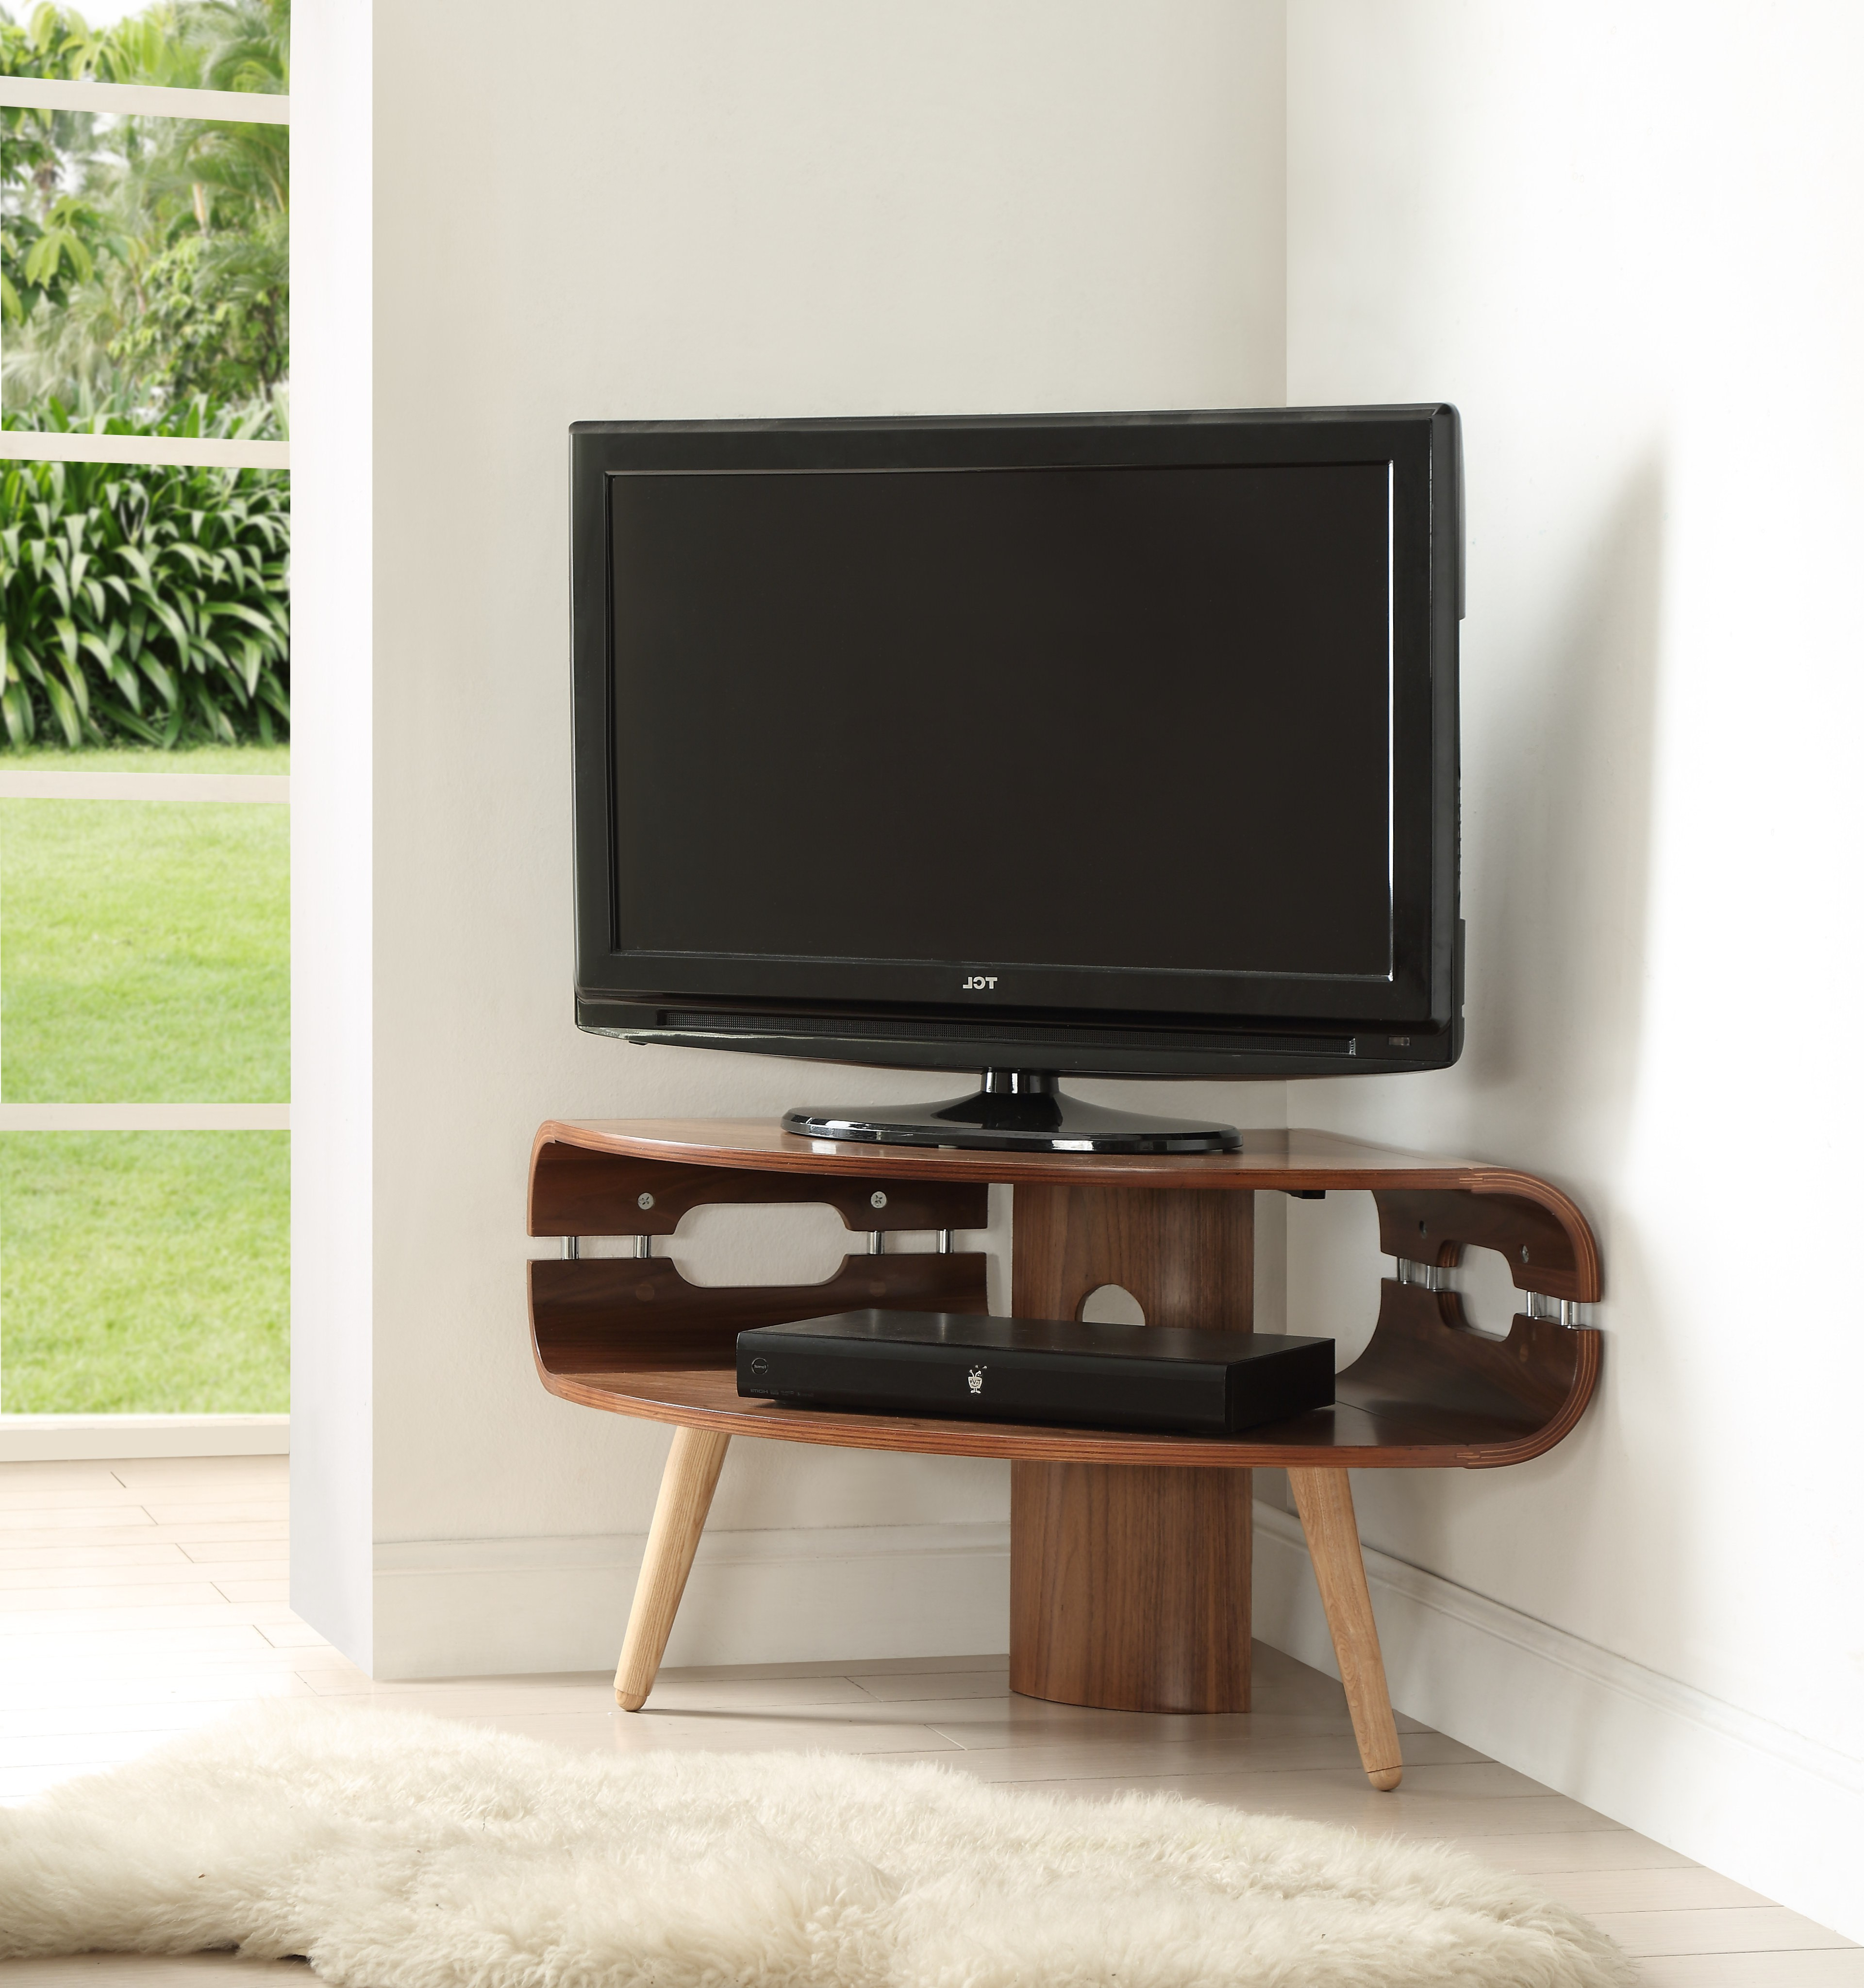 2017 Corner Tv Cabinets With Oak Tv Stand Walmart Solid Wood Stands For Flat Screens Light (View 1 of 20)